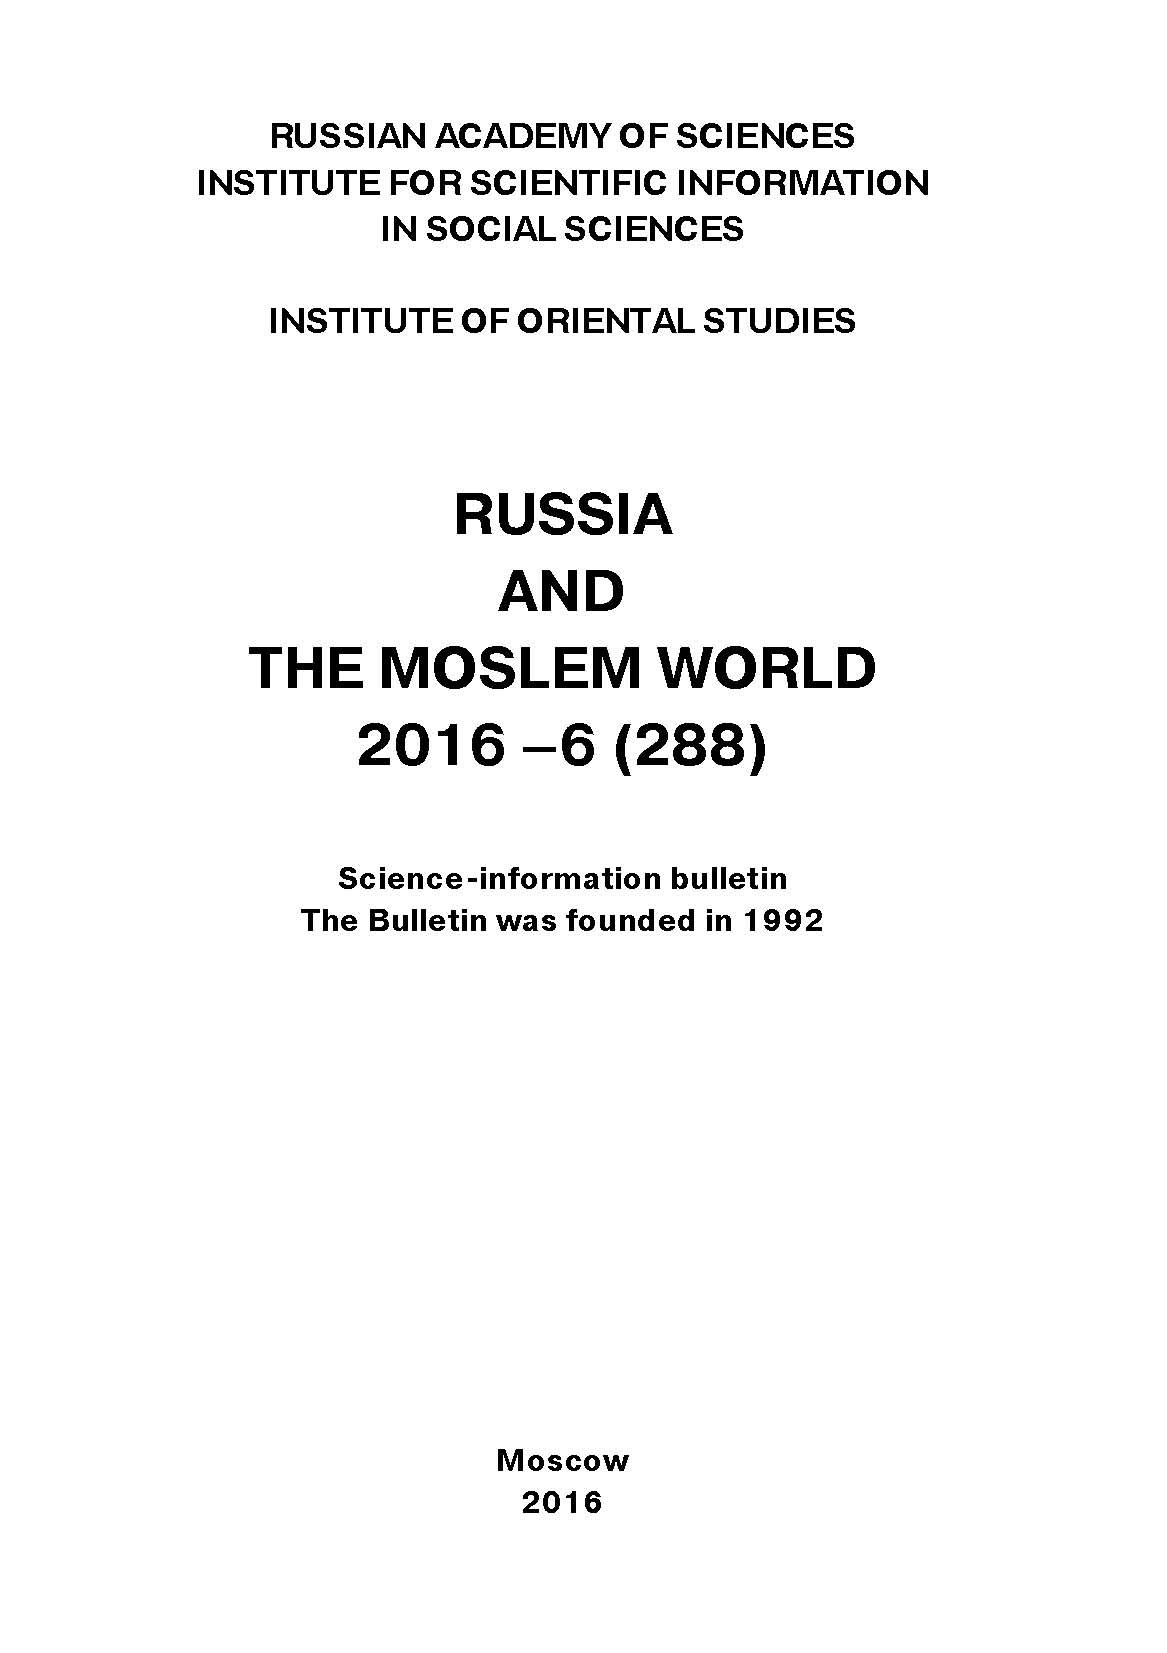 Сборник статей Russia and the Moslem World № 06 / 2016 сборник статей russia and the moslem world 05 2016